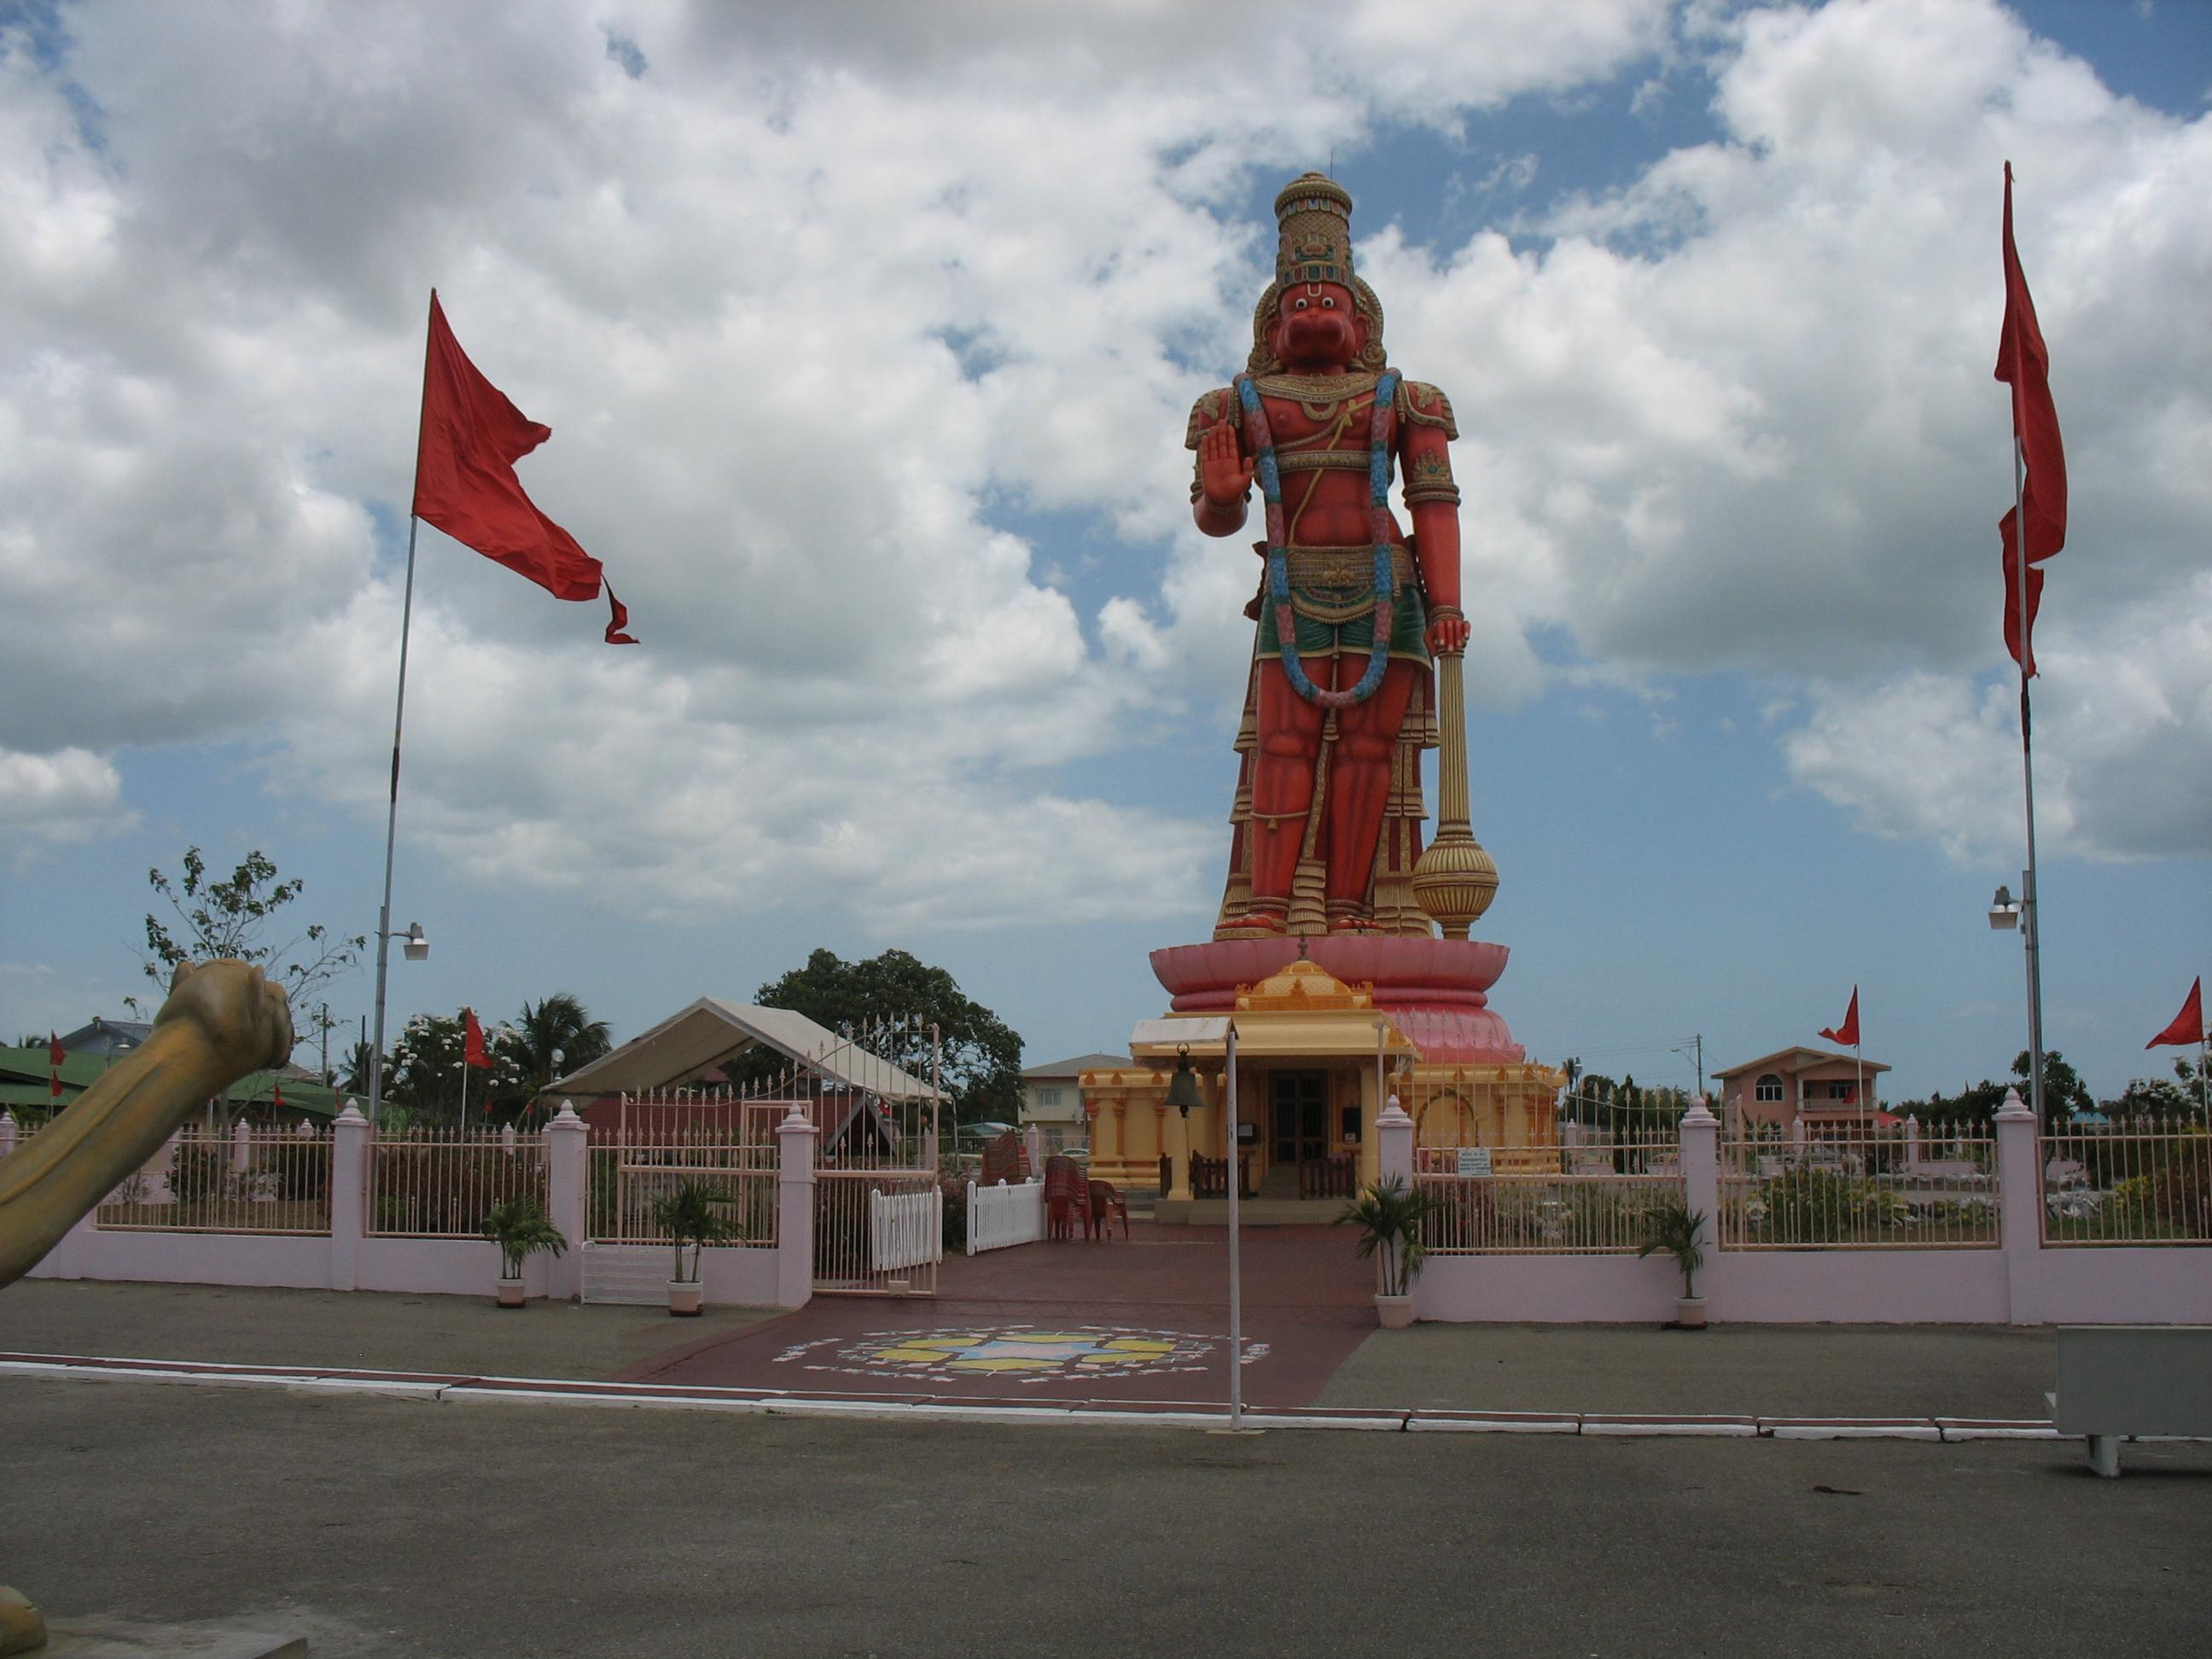 trinidad culture Culture & identity of trinidad & tobago introduction the culture in trinidad & tobago is heavily based on ethnicity, religion, and history as the country is fairly diverse and each ethnic group has different traditions and customs.